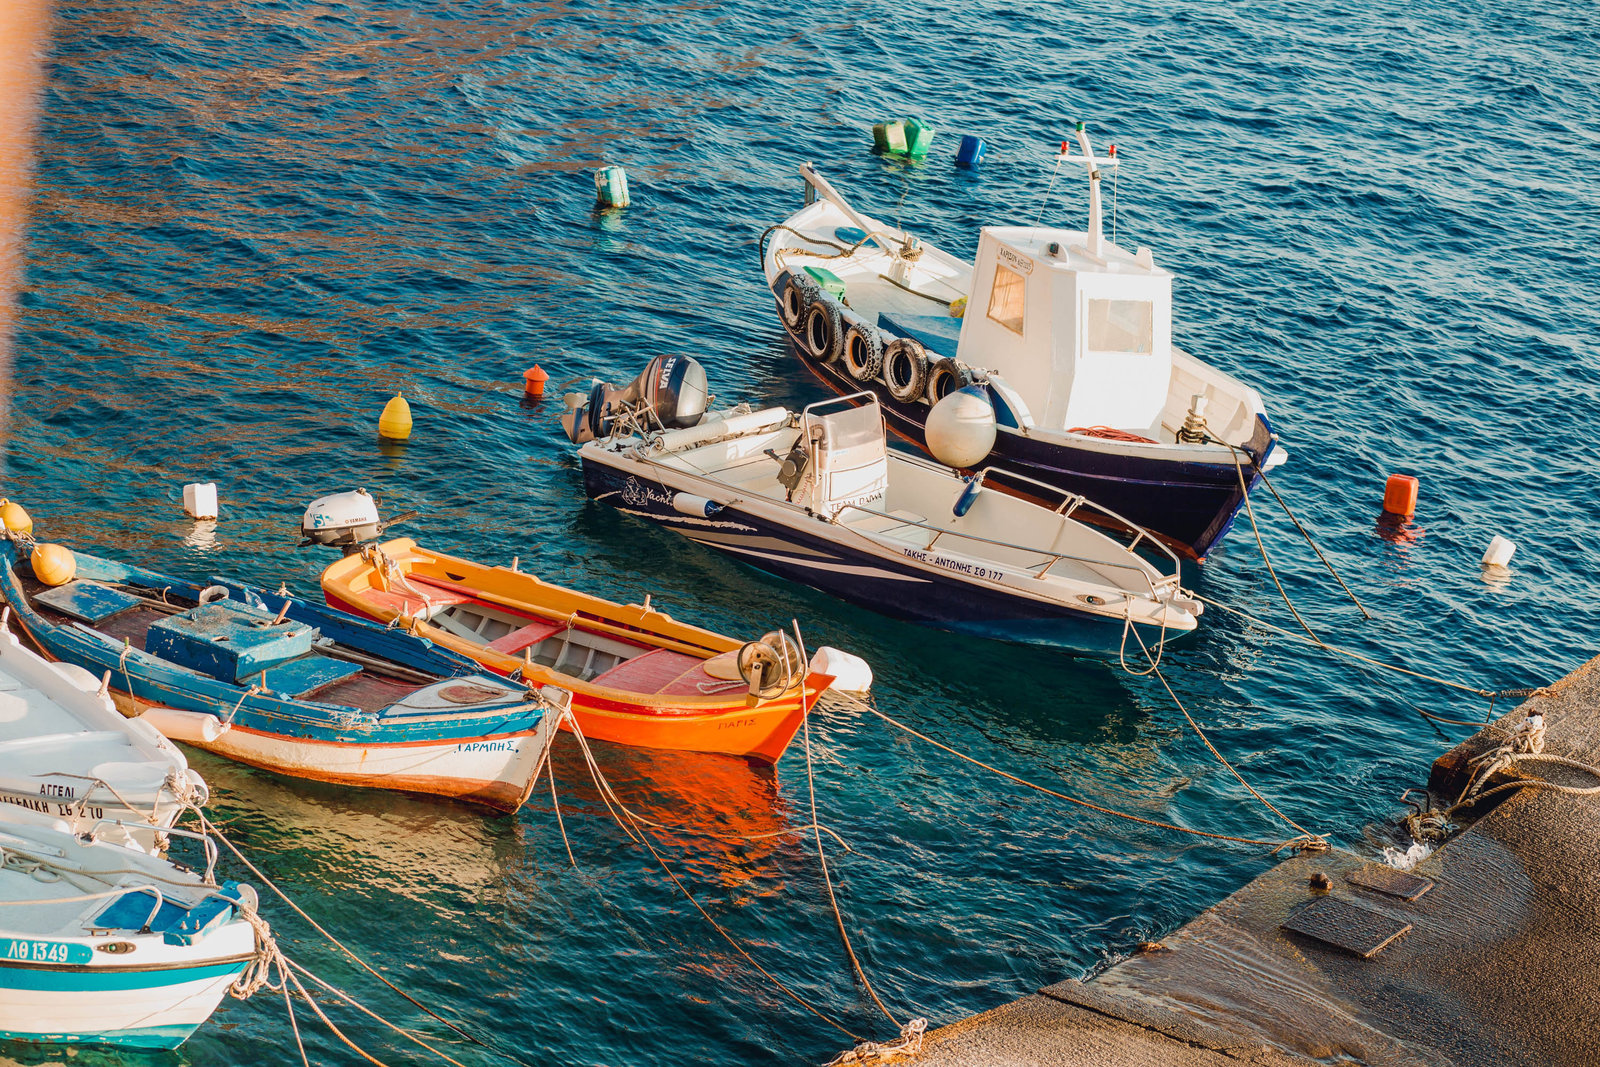 boats-dock-amoudi-bay-destination-travel-santorini-wedding-kate-timbers-photo-2652